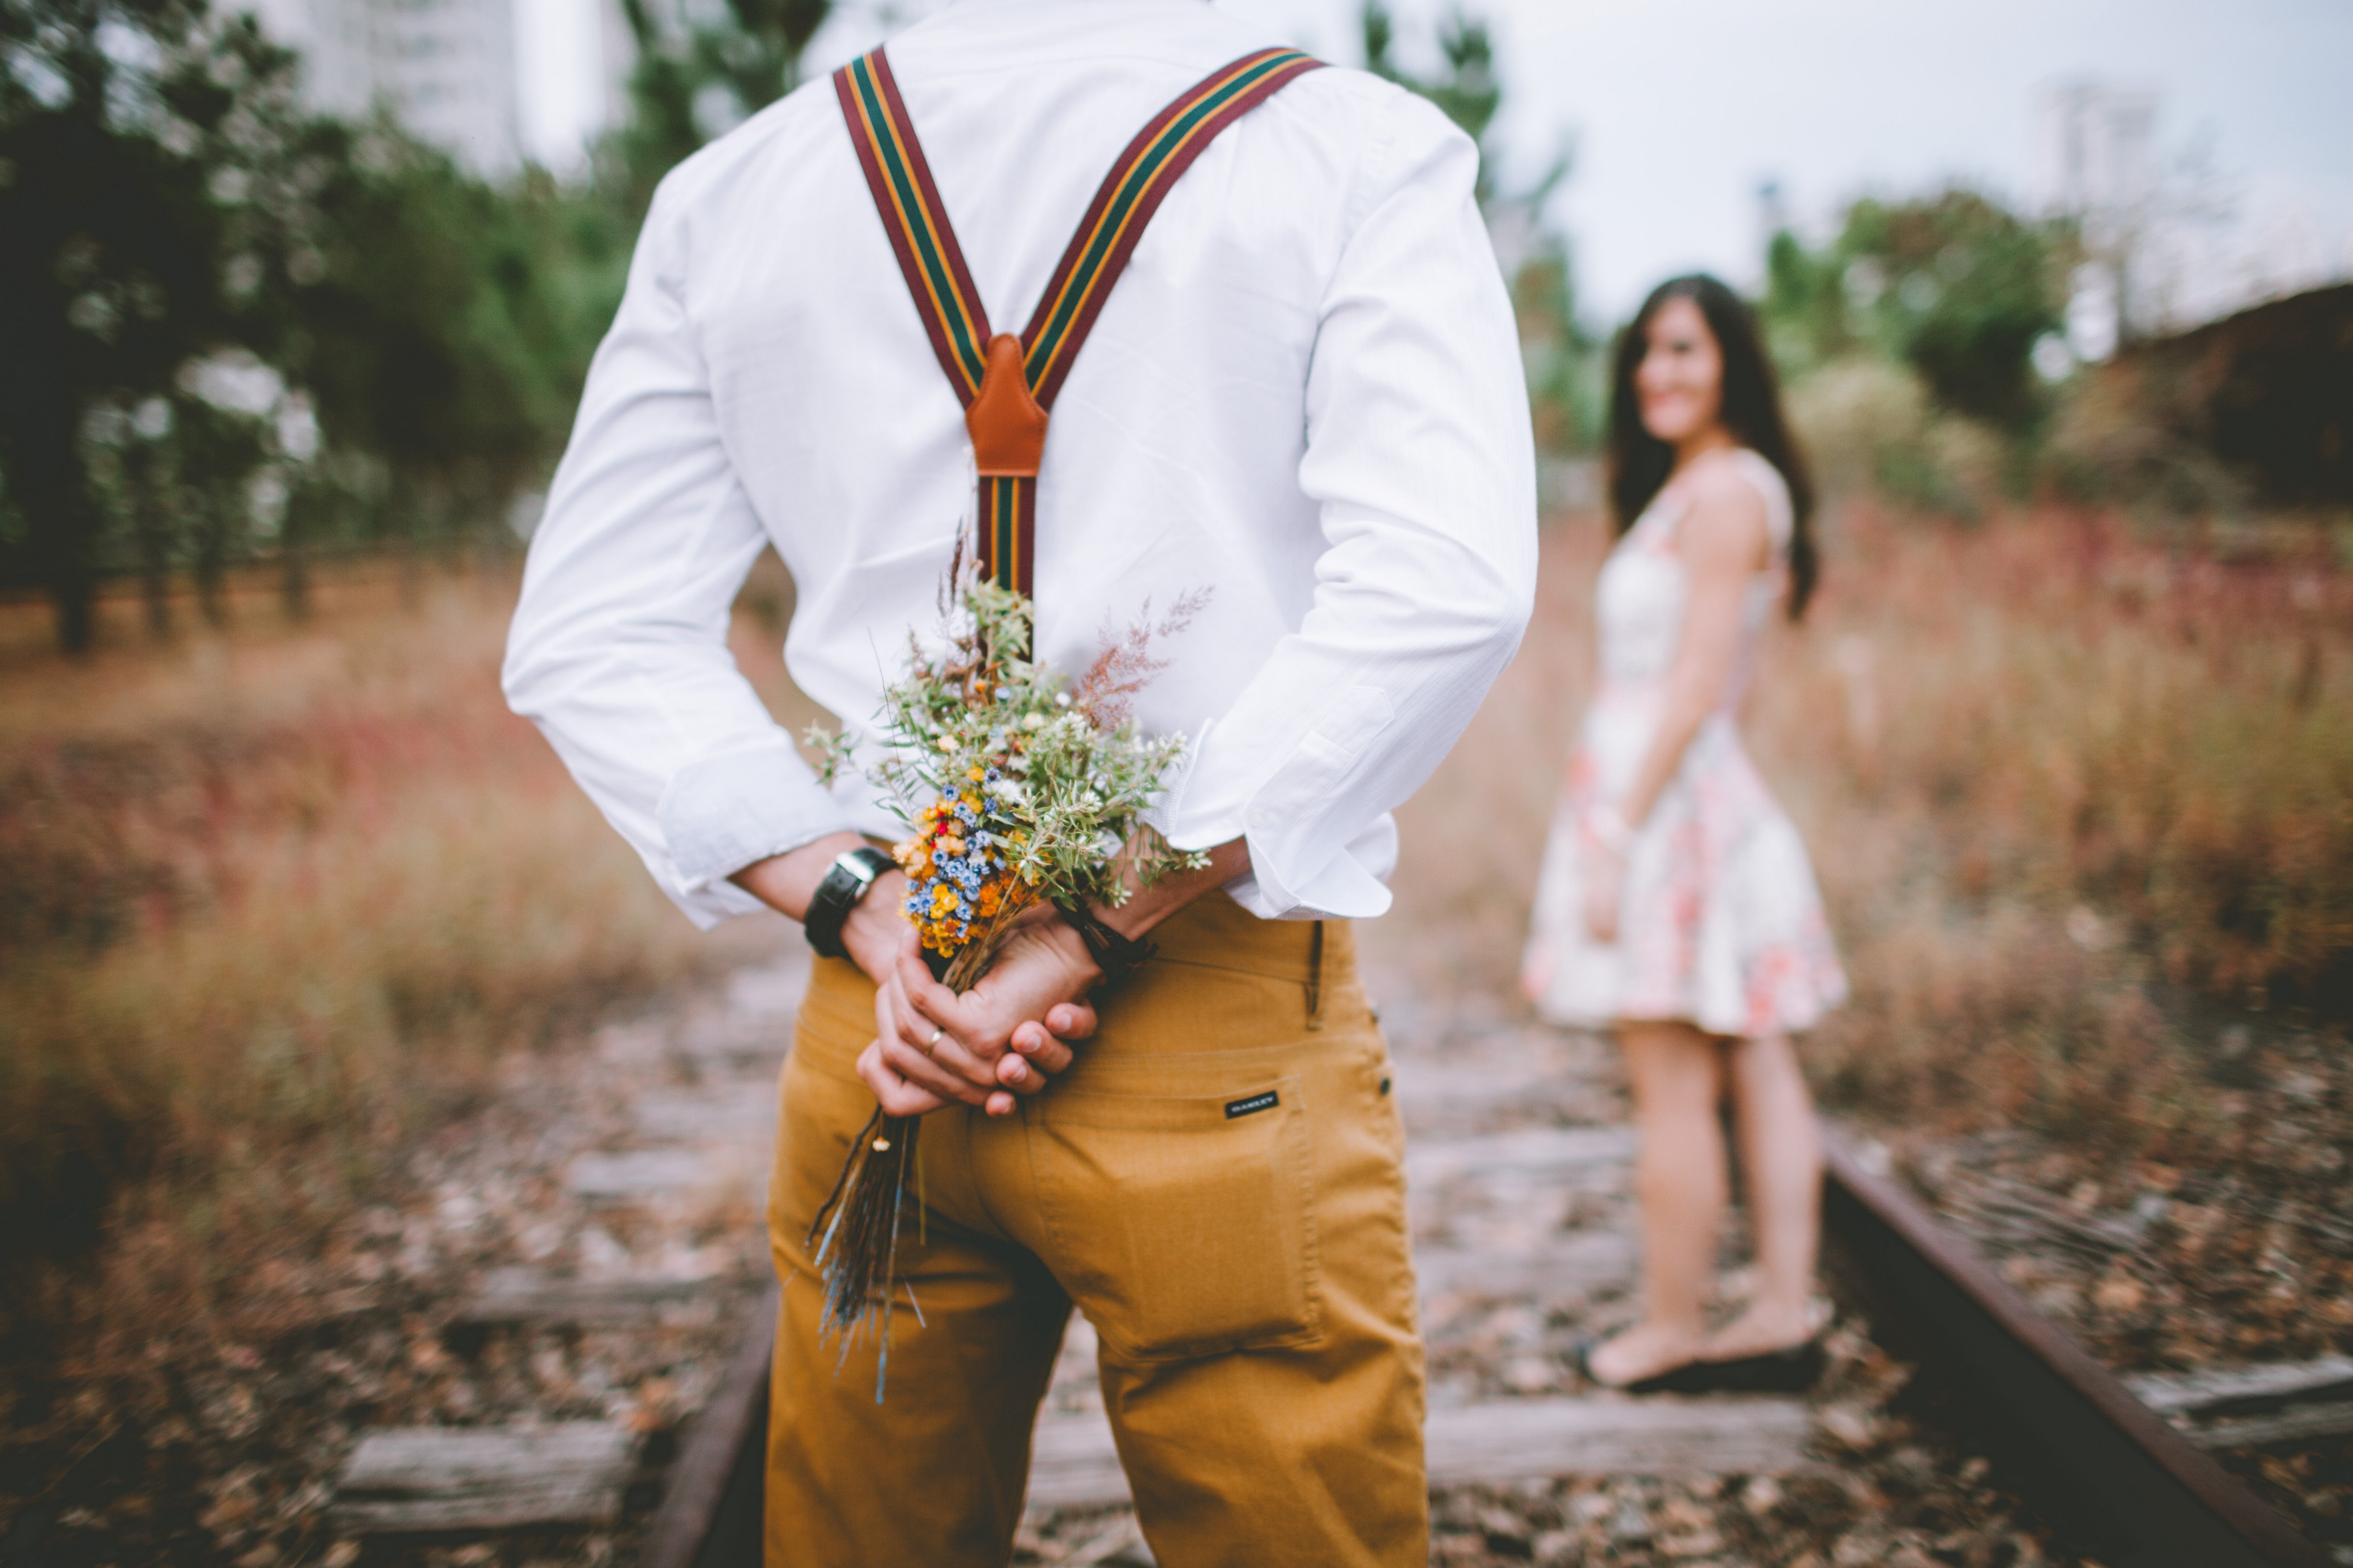 Revealed: 7 Tips To Scoring a Second Date - THREAD by ZALORA